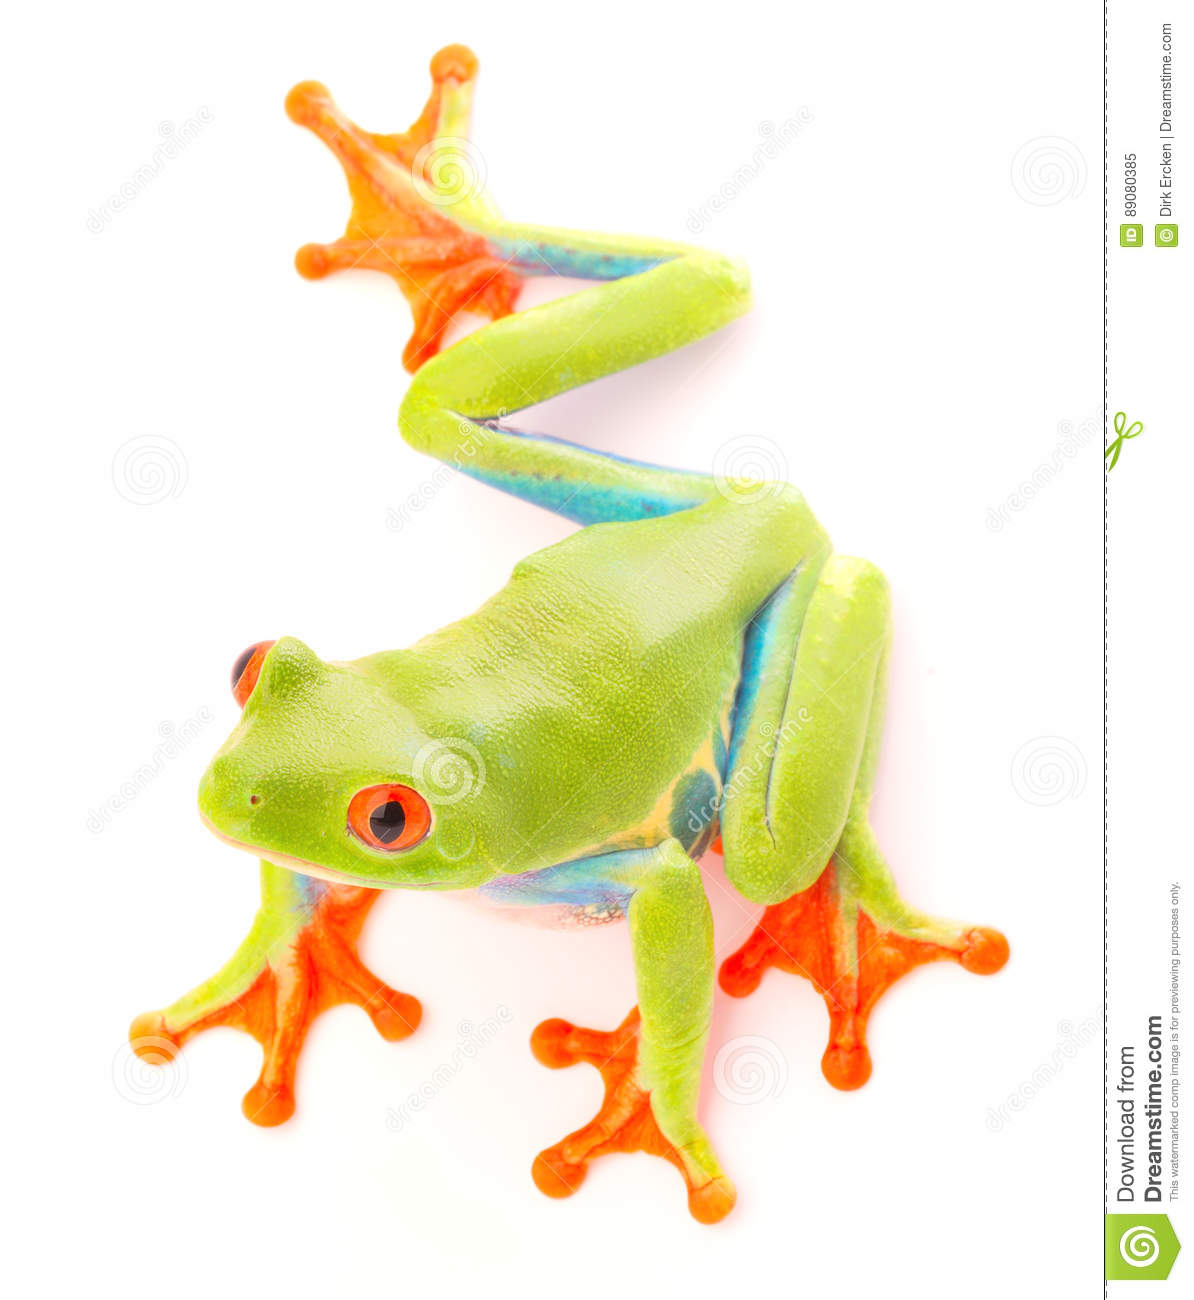 Red eyed tree frog an animal with vibrant eyes